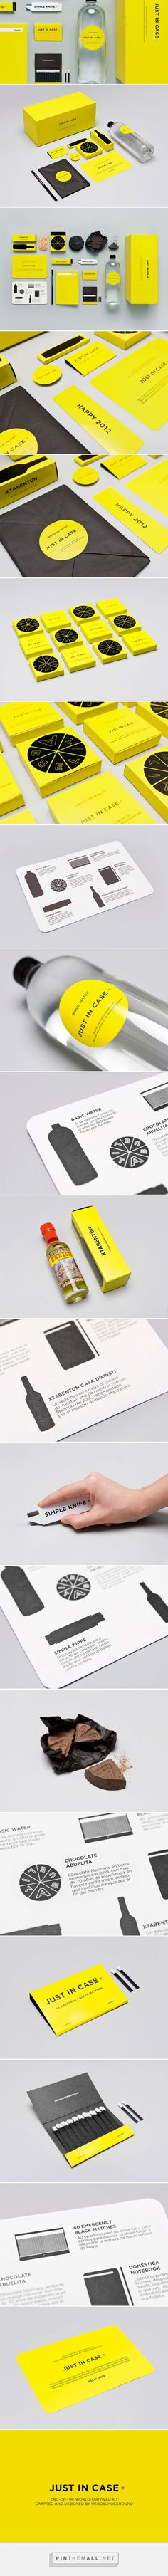 Devi Soewono | End-of-the-world survival kit, crafted and designed in Mexico by MENOSUNOCEROUNO